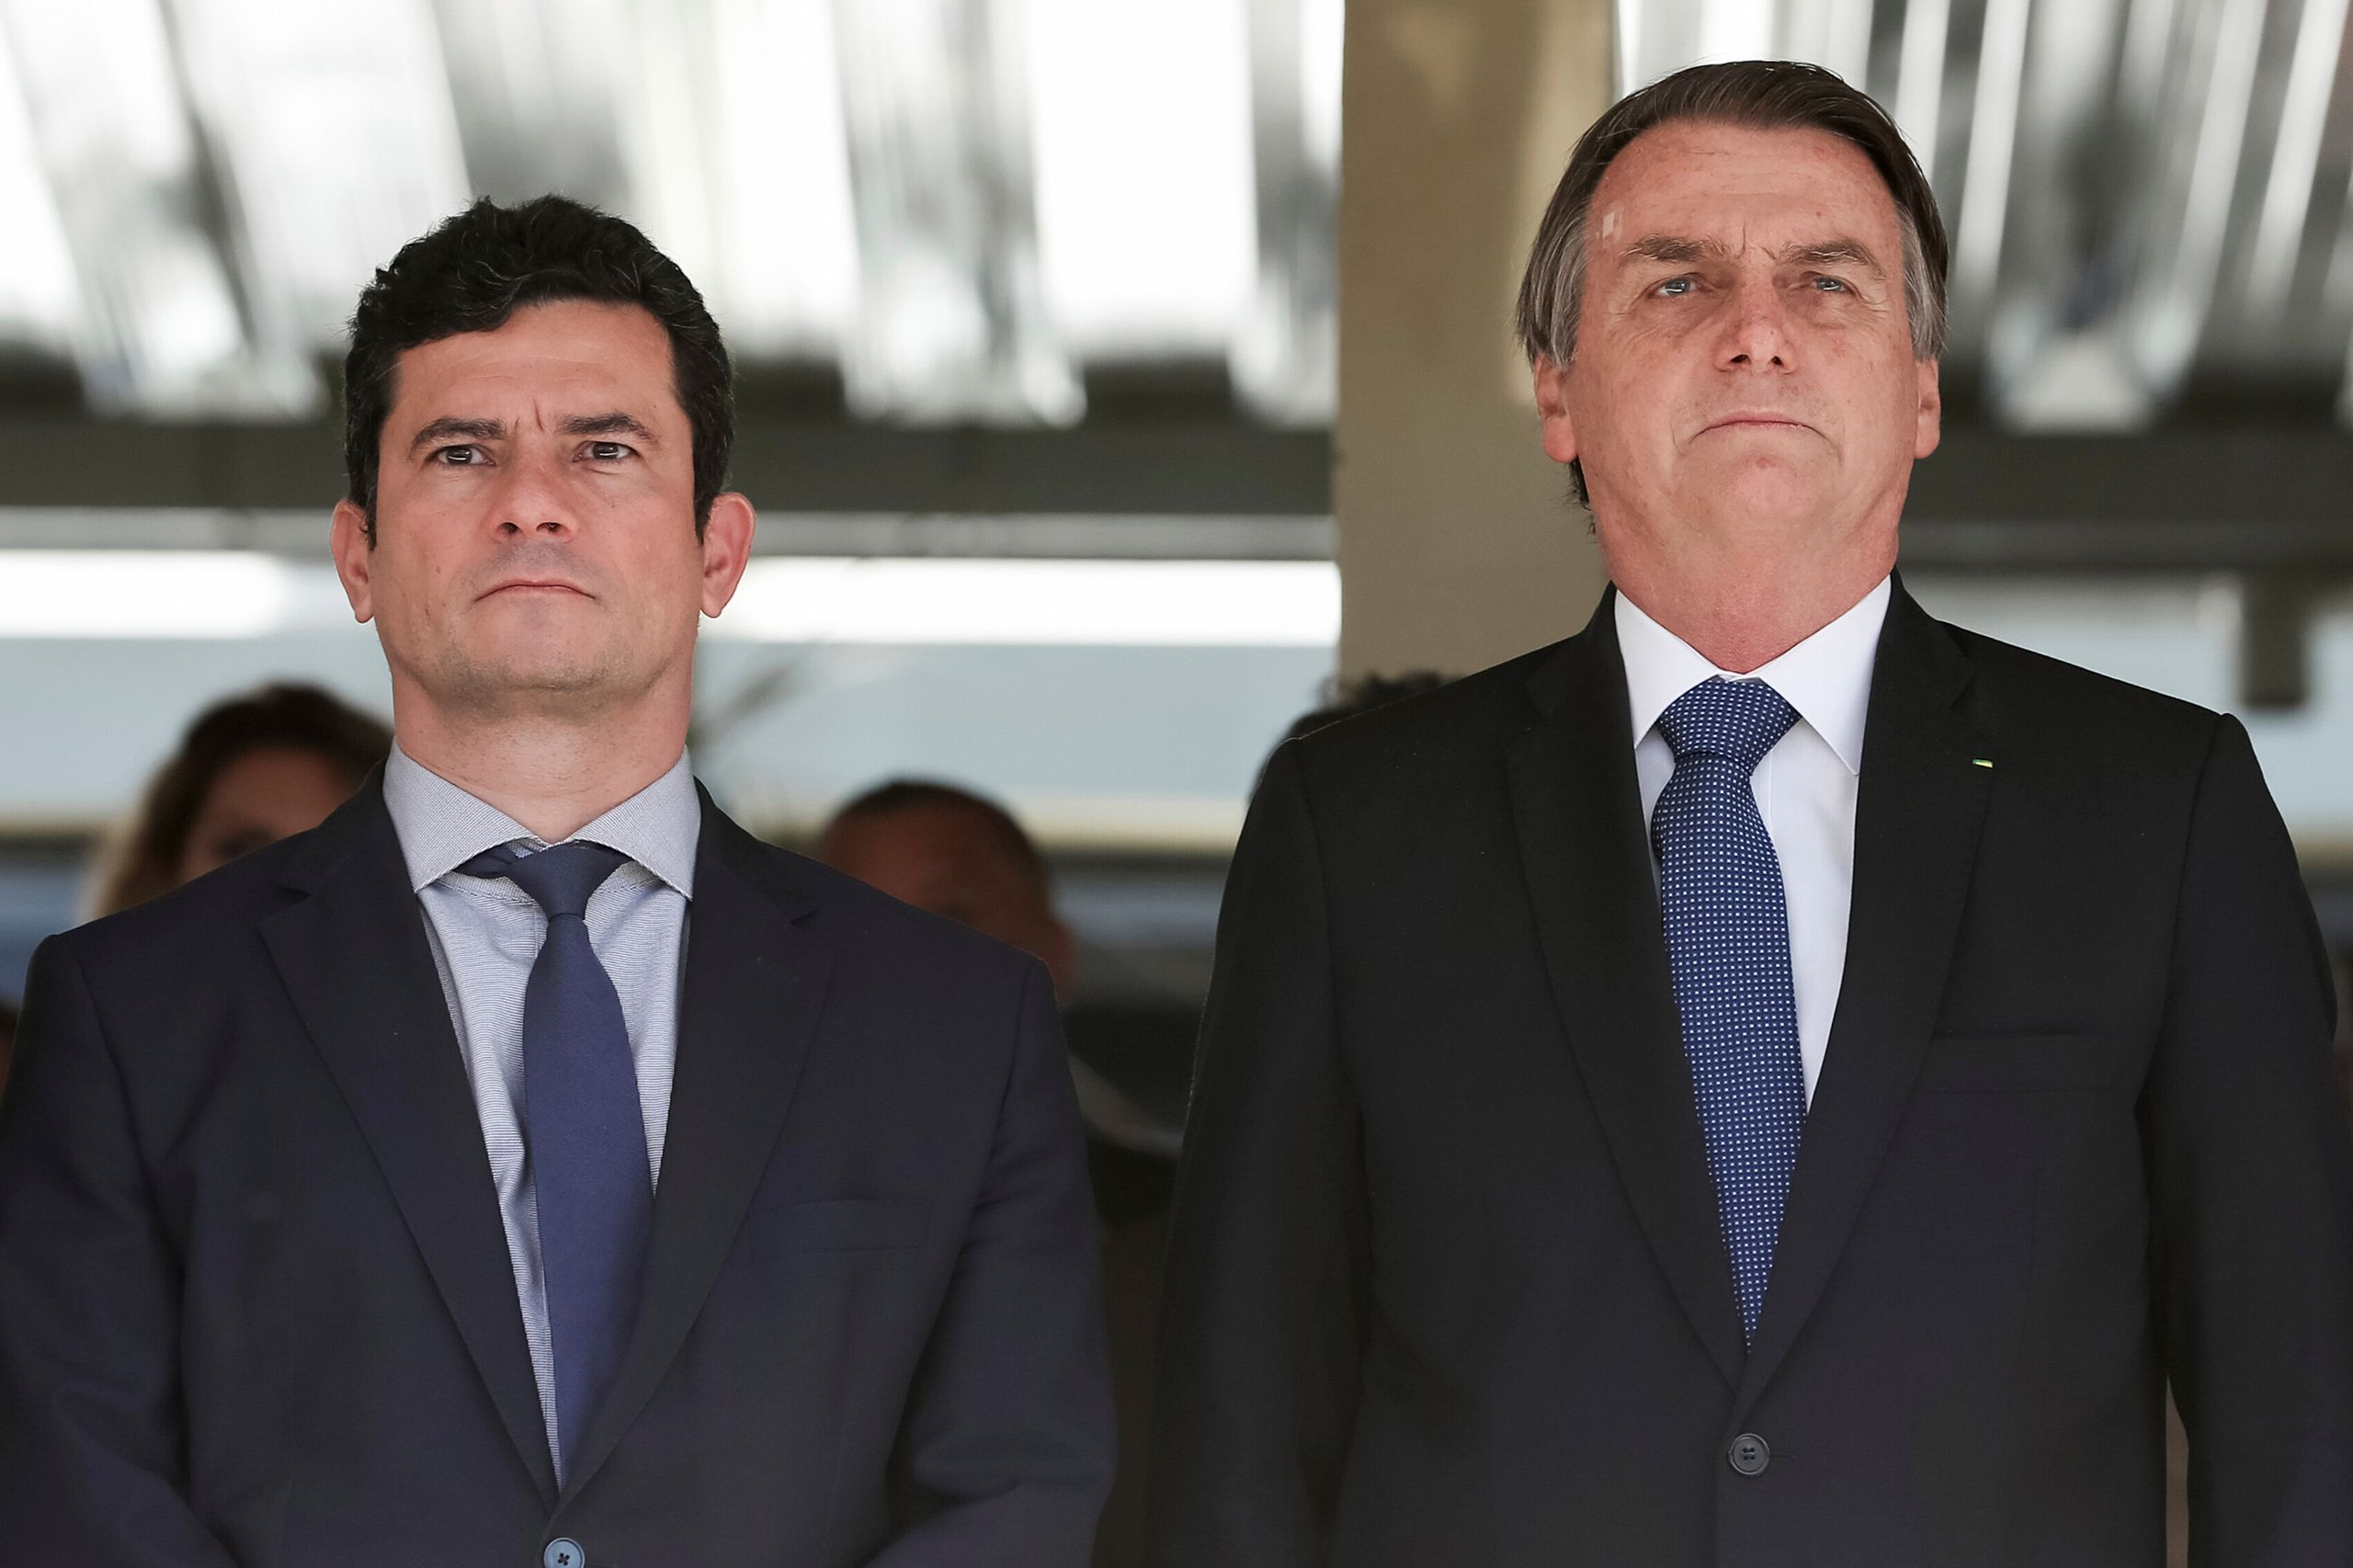 In this photo released by Brazil's Presidential Press Office, President Jair Bolsonaro, right, and Justice Minister Sergio Mo